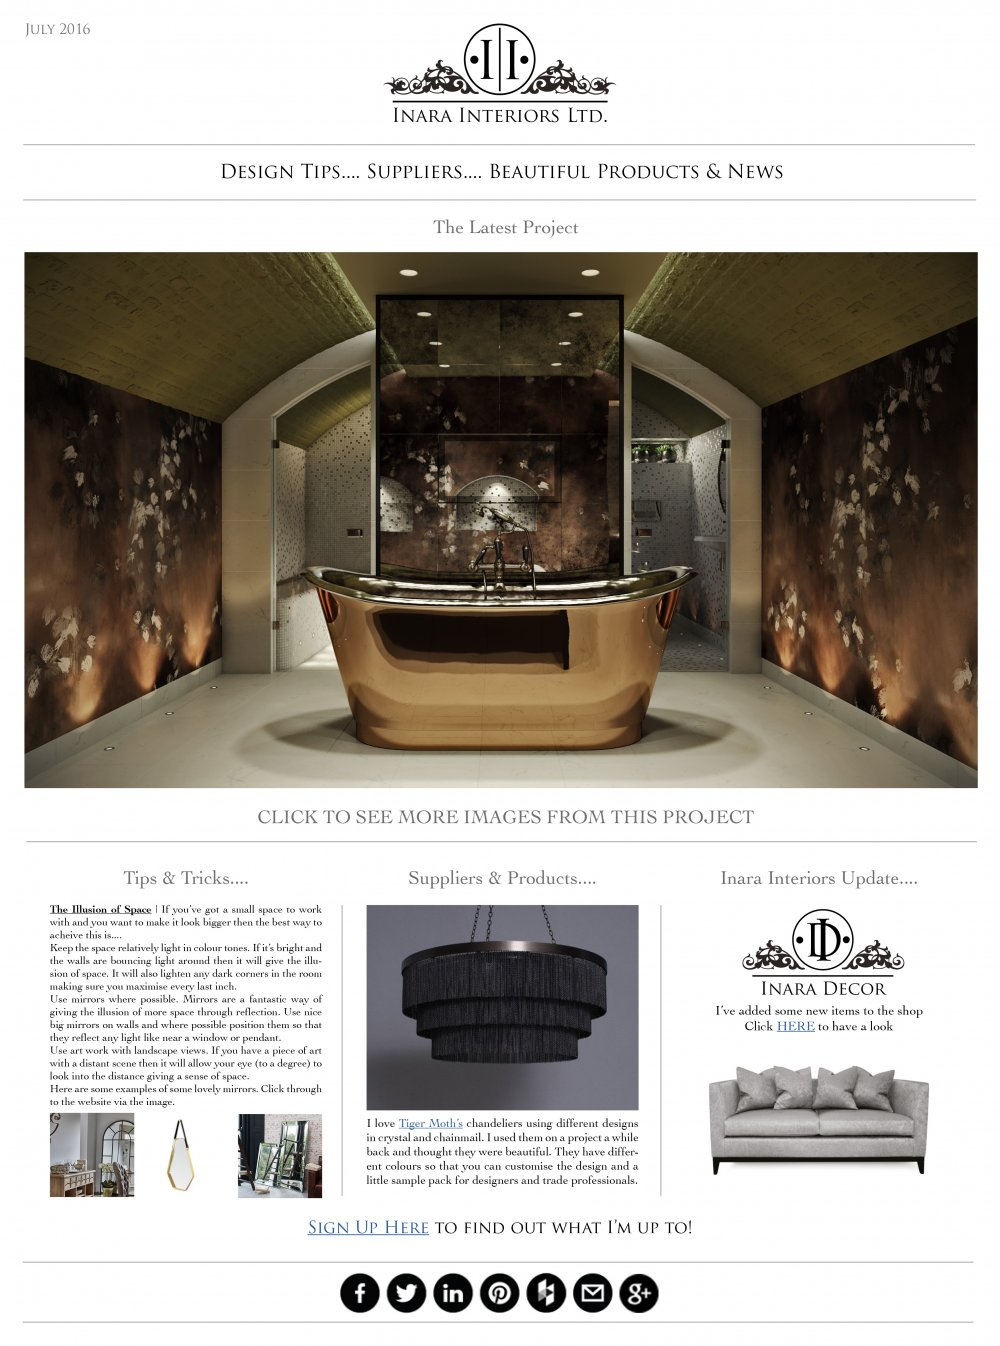 Inara Interiors Newsletter | July 2016